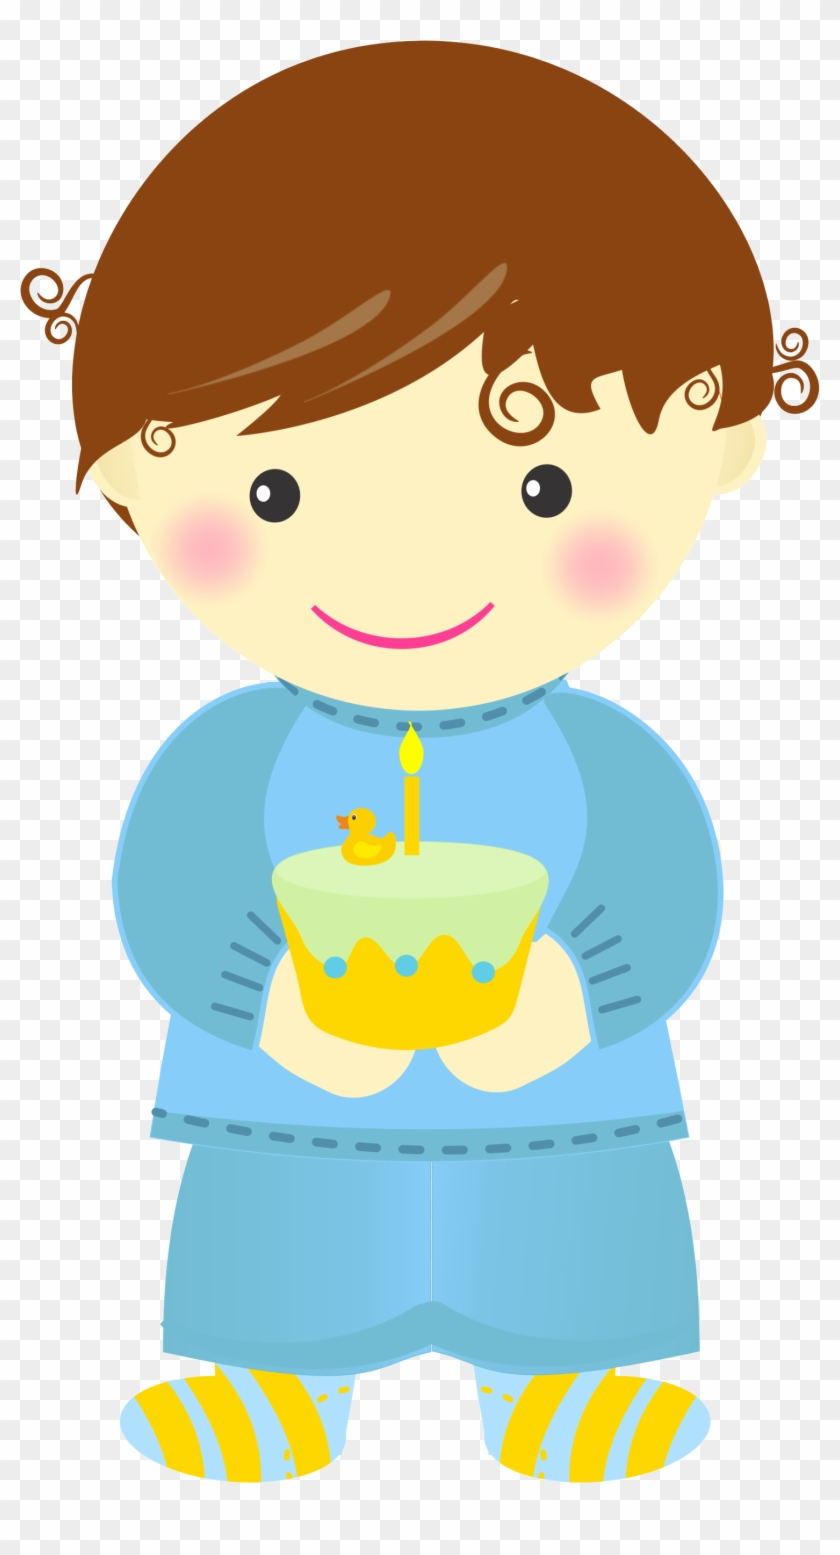 Baby's First Birthday Clip Art - Baby's First Birthday Clipart #5763